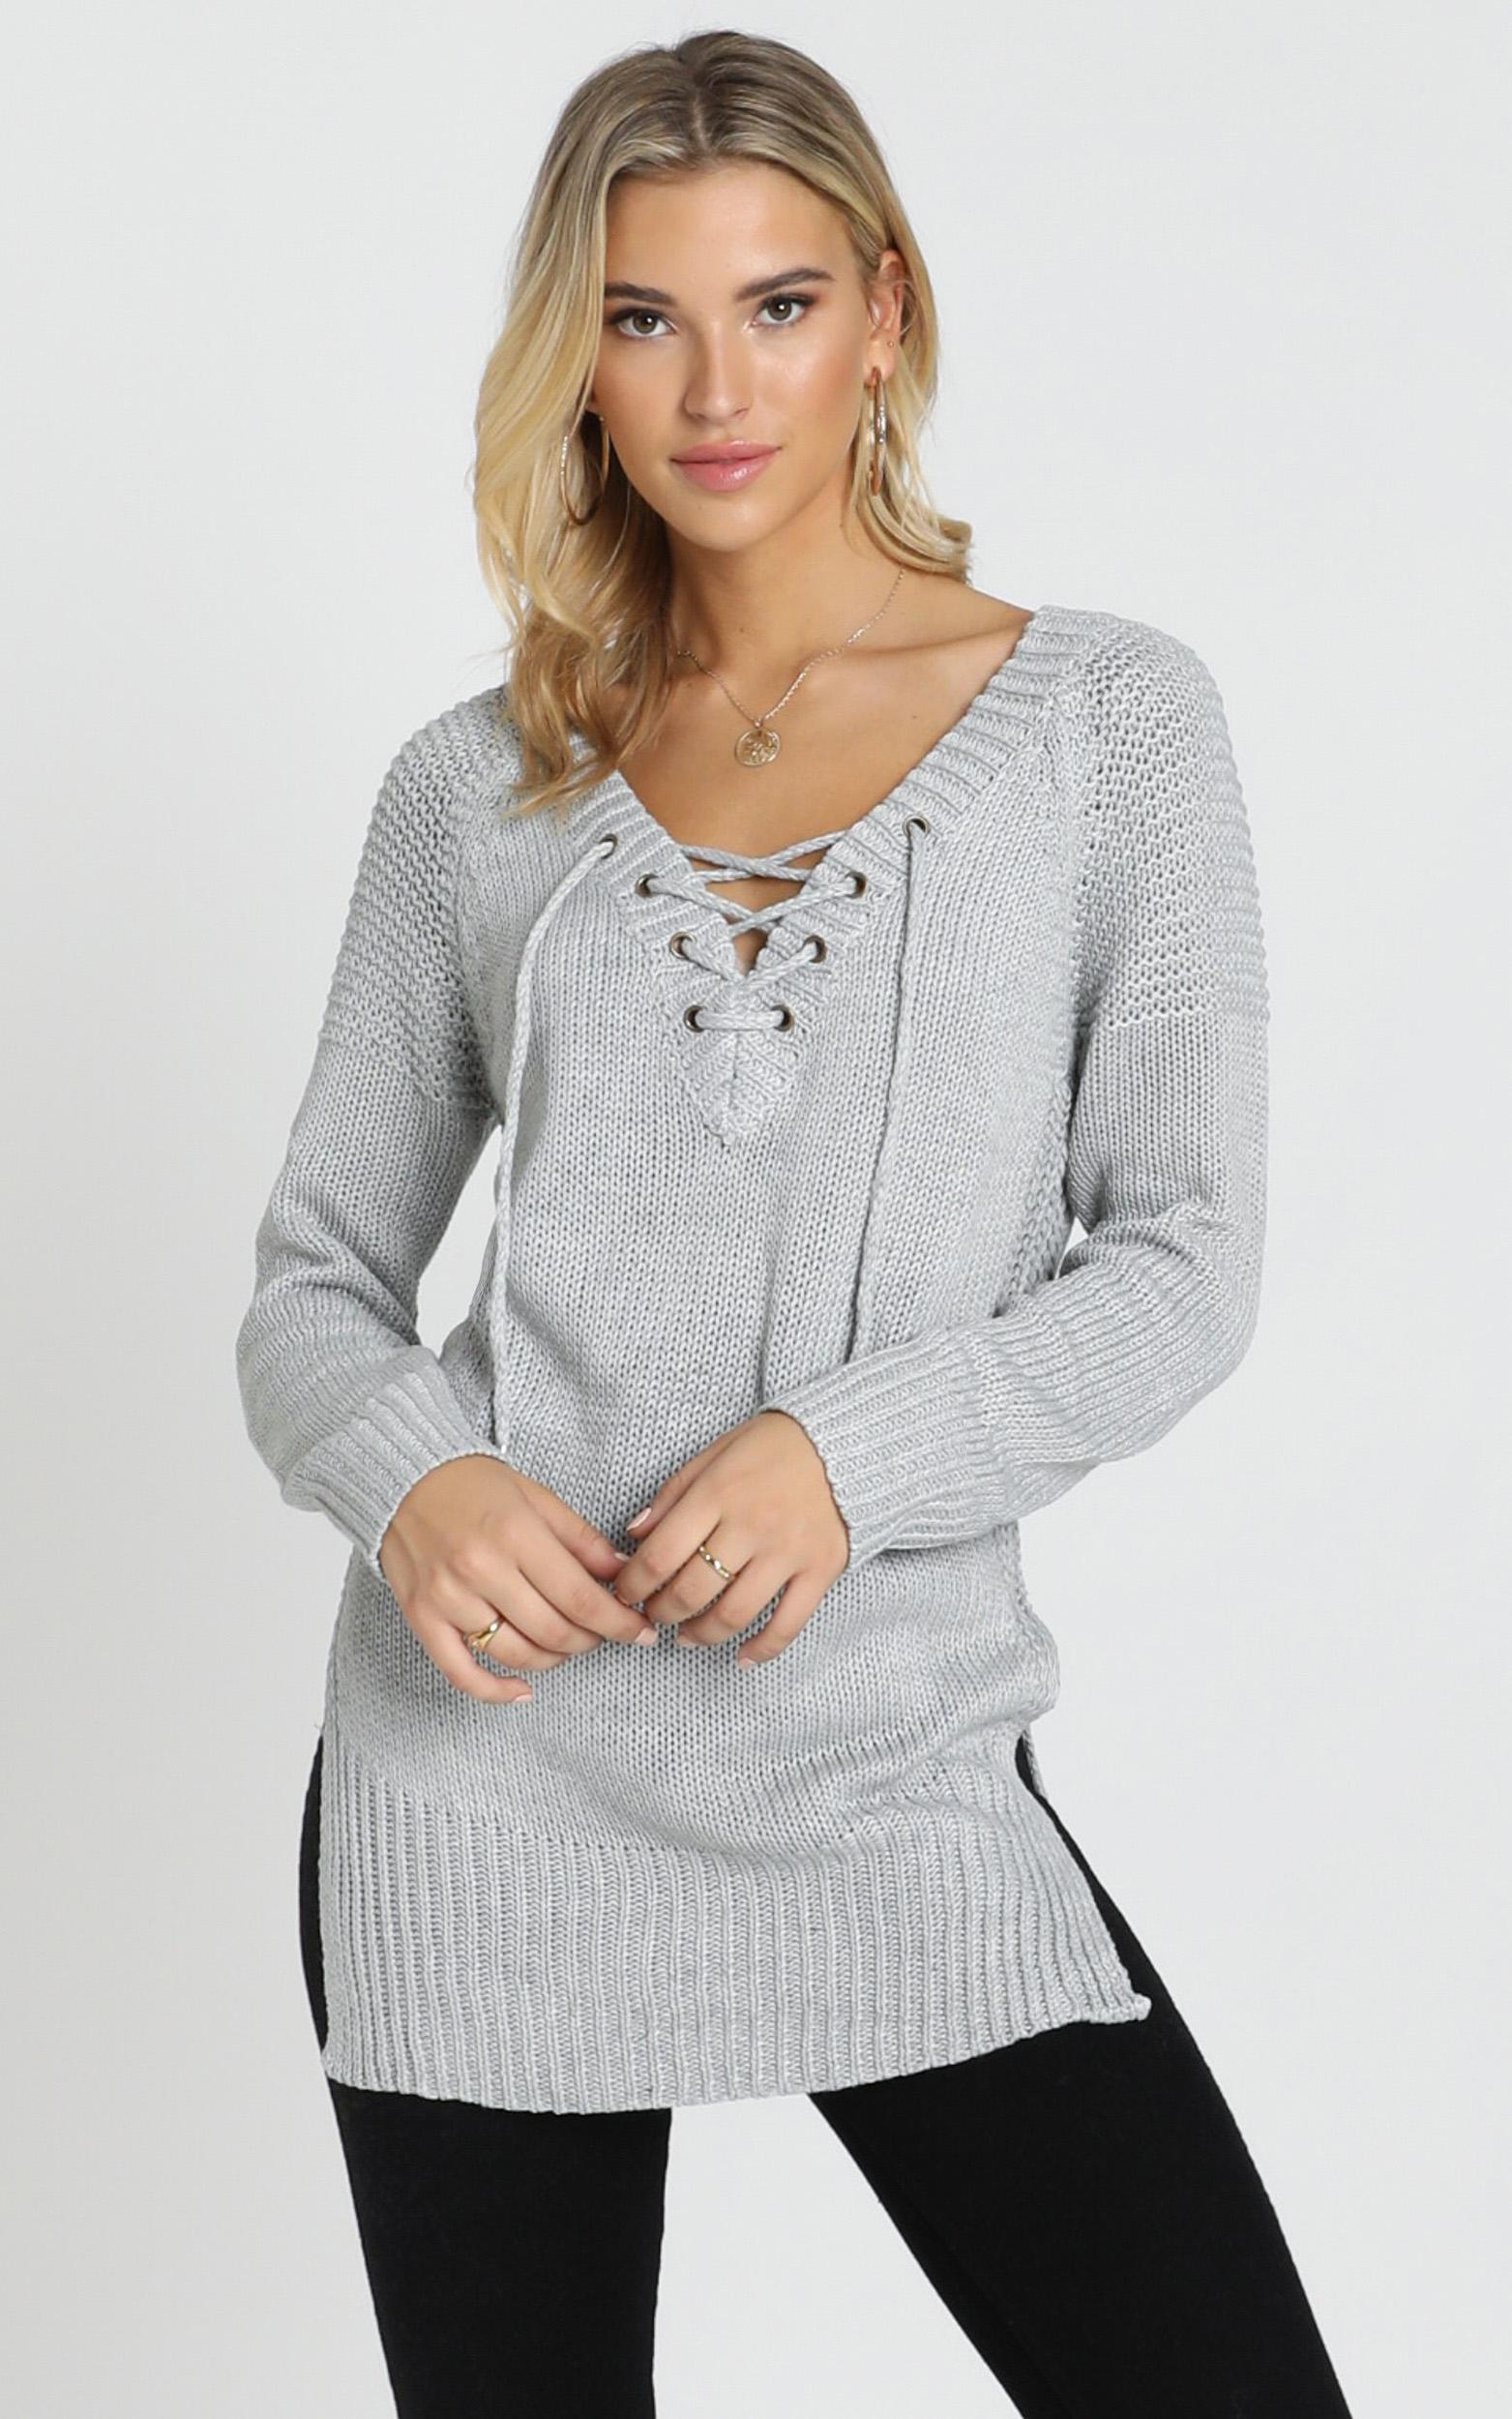 Sewn In knit Sweater In Grey - 6 (XS), Grey, hi-res image number null